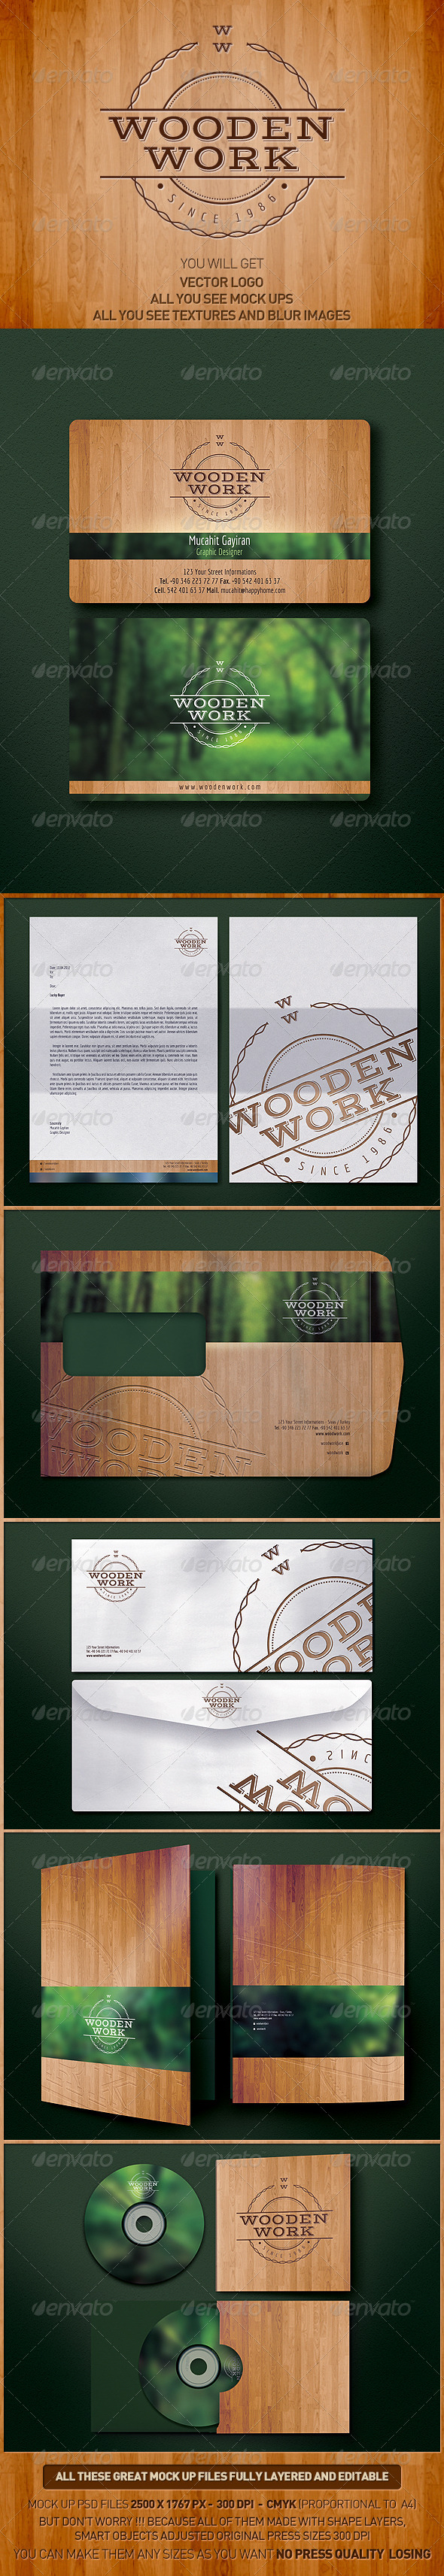 Wooden Corporate Identity v13 - Stationery Print Templates